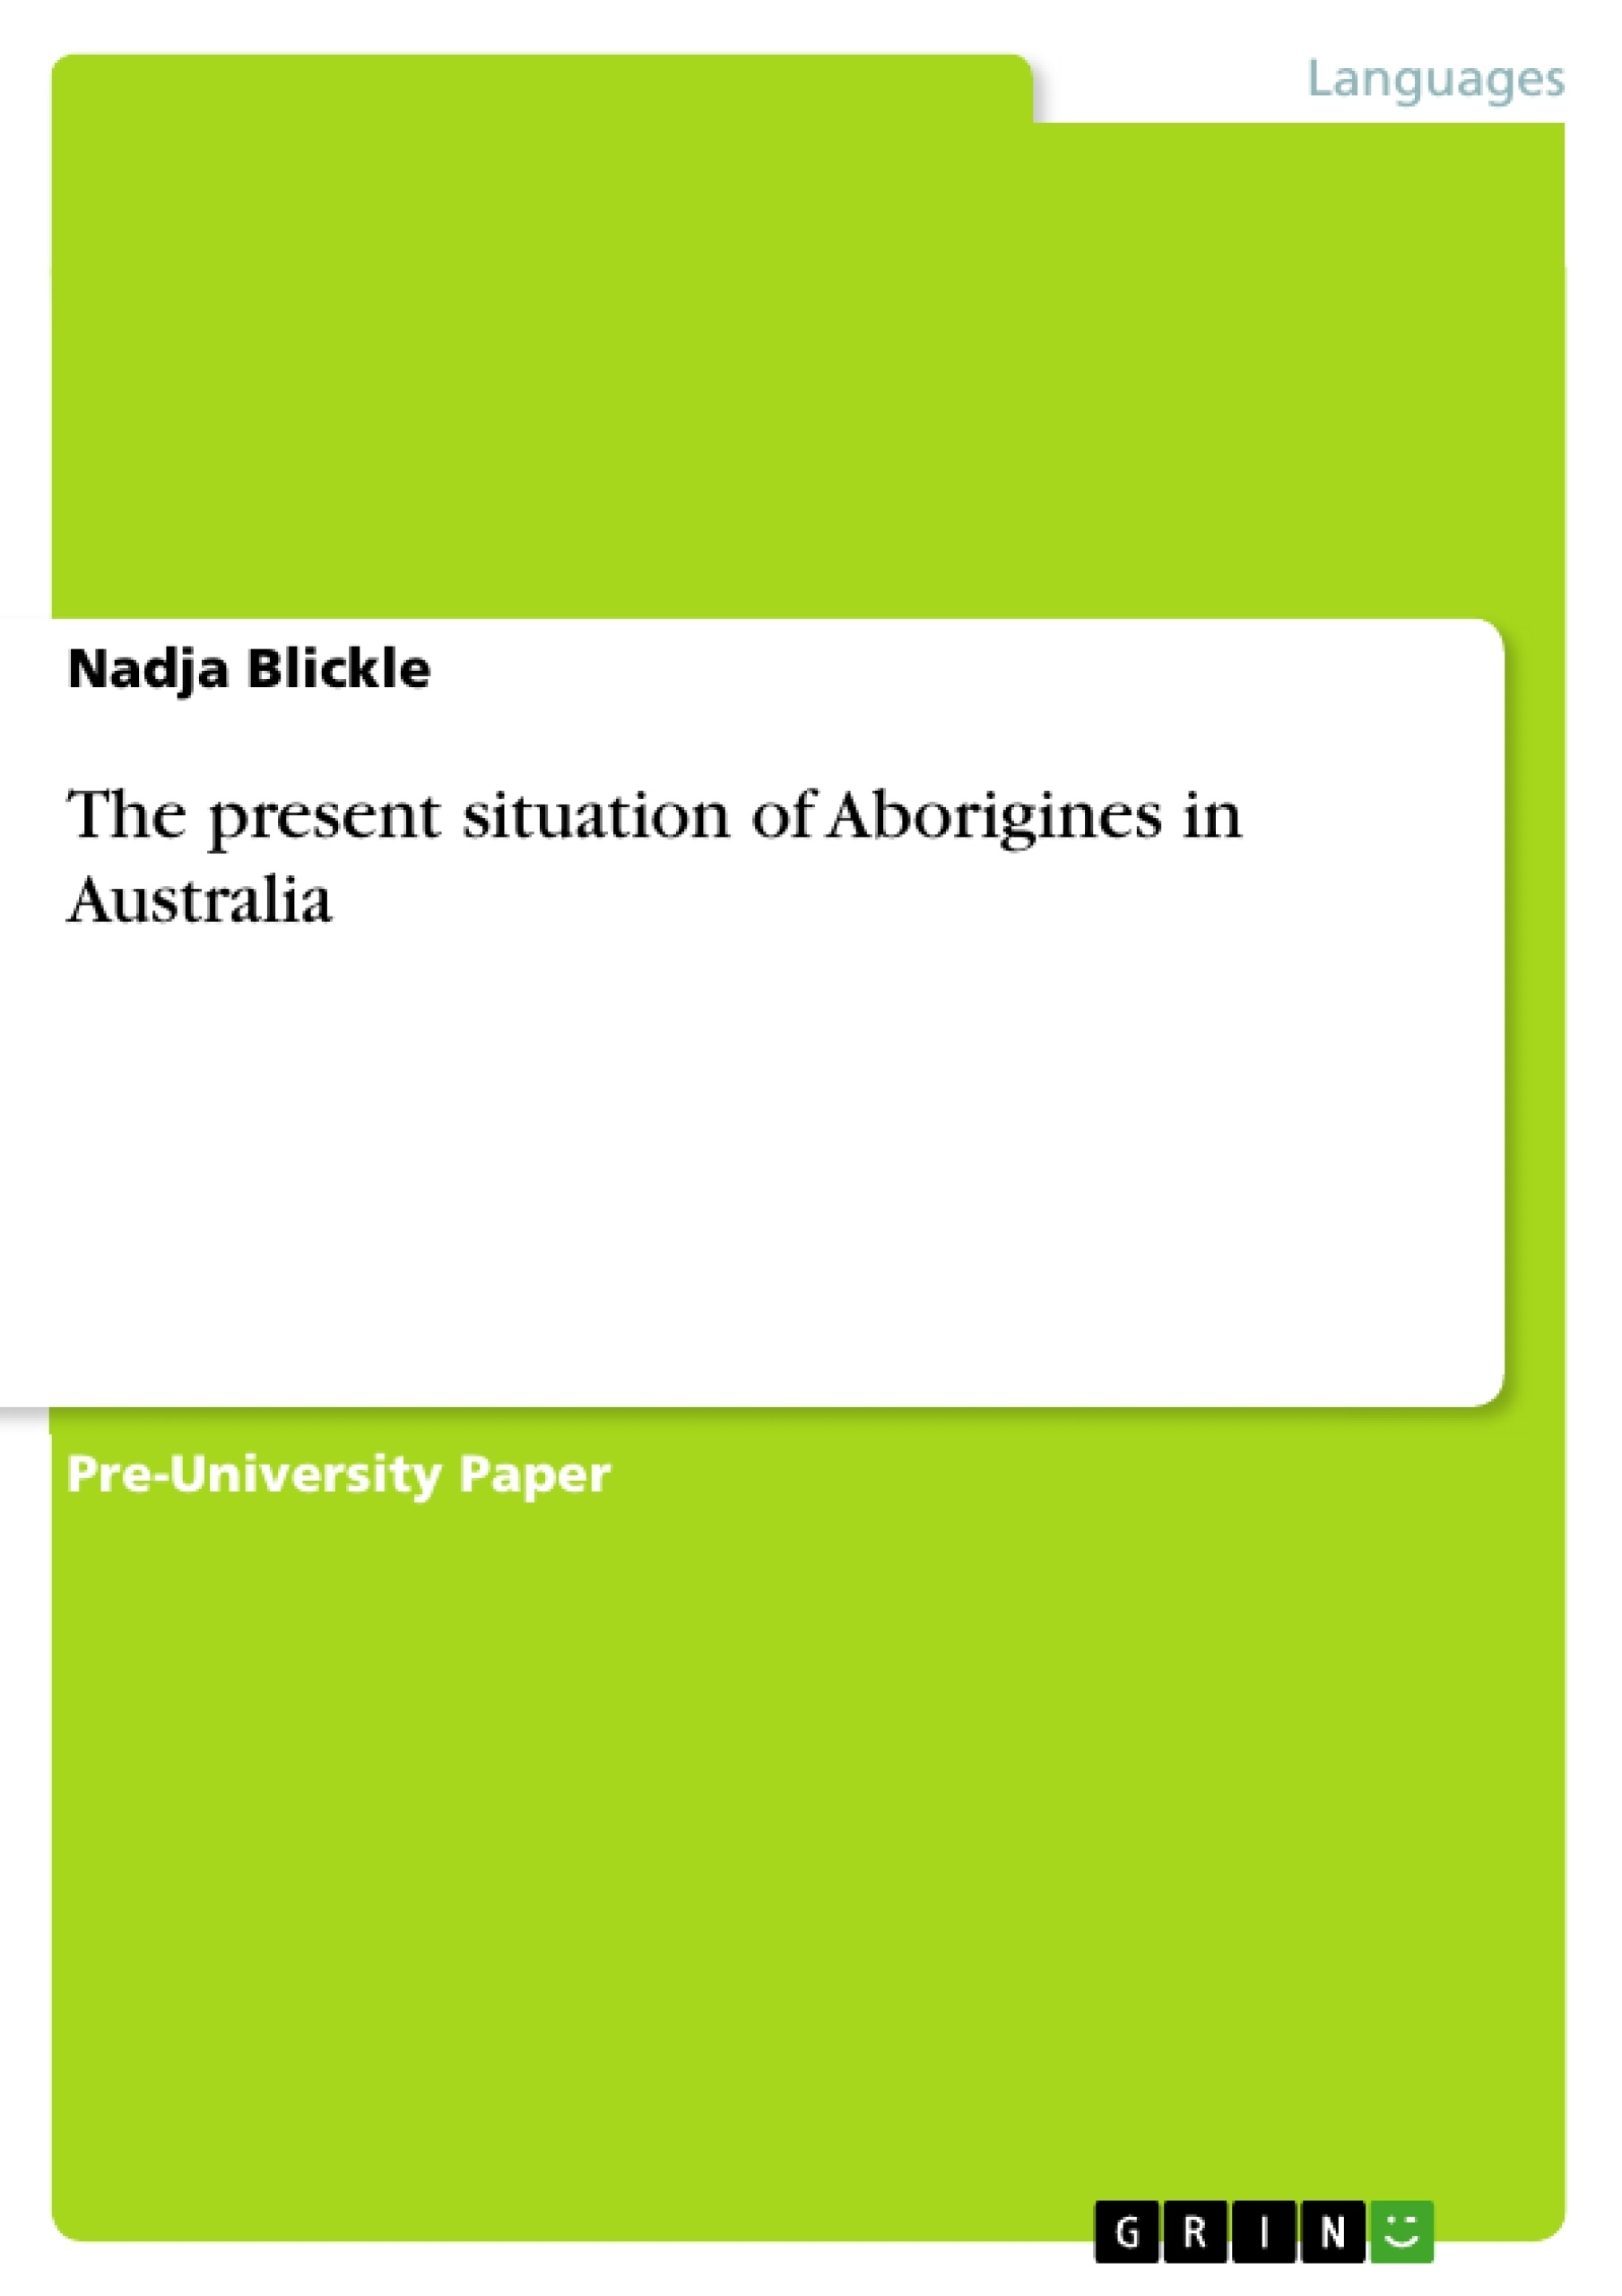 the present situation of aborigines in publish your the present situation of aborigines in publish your master s thesis bachelor s thesis essay or term paper